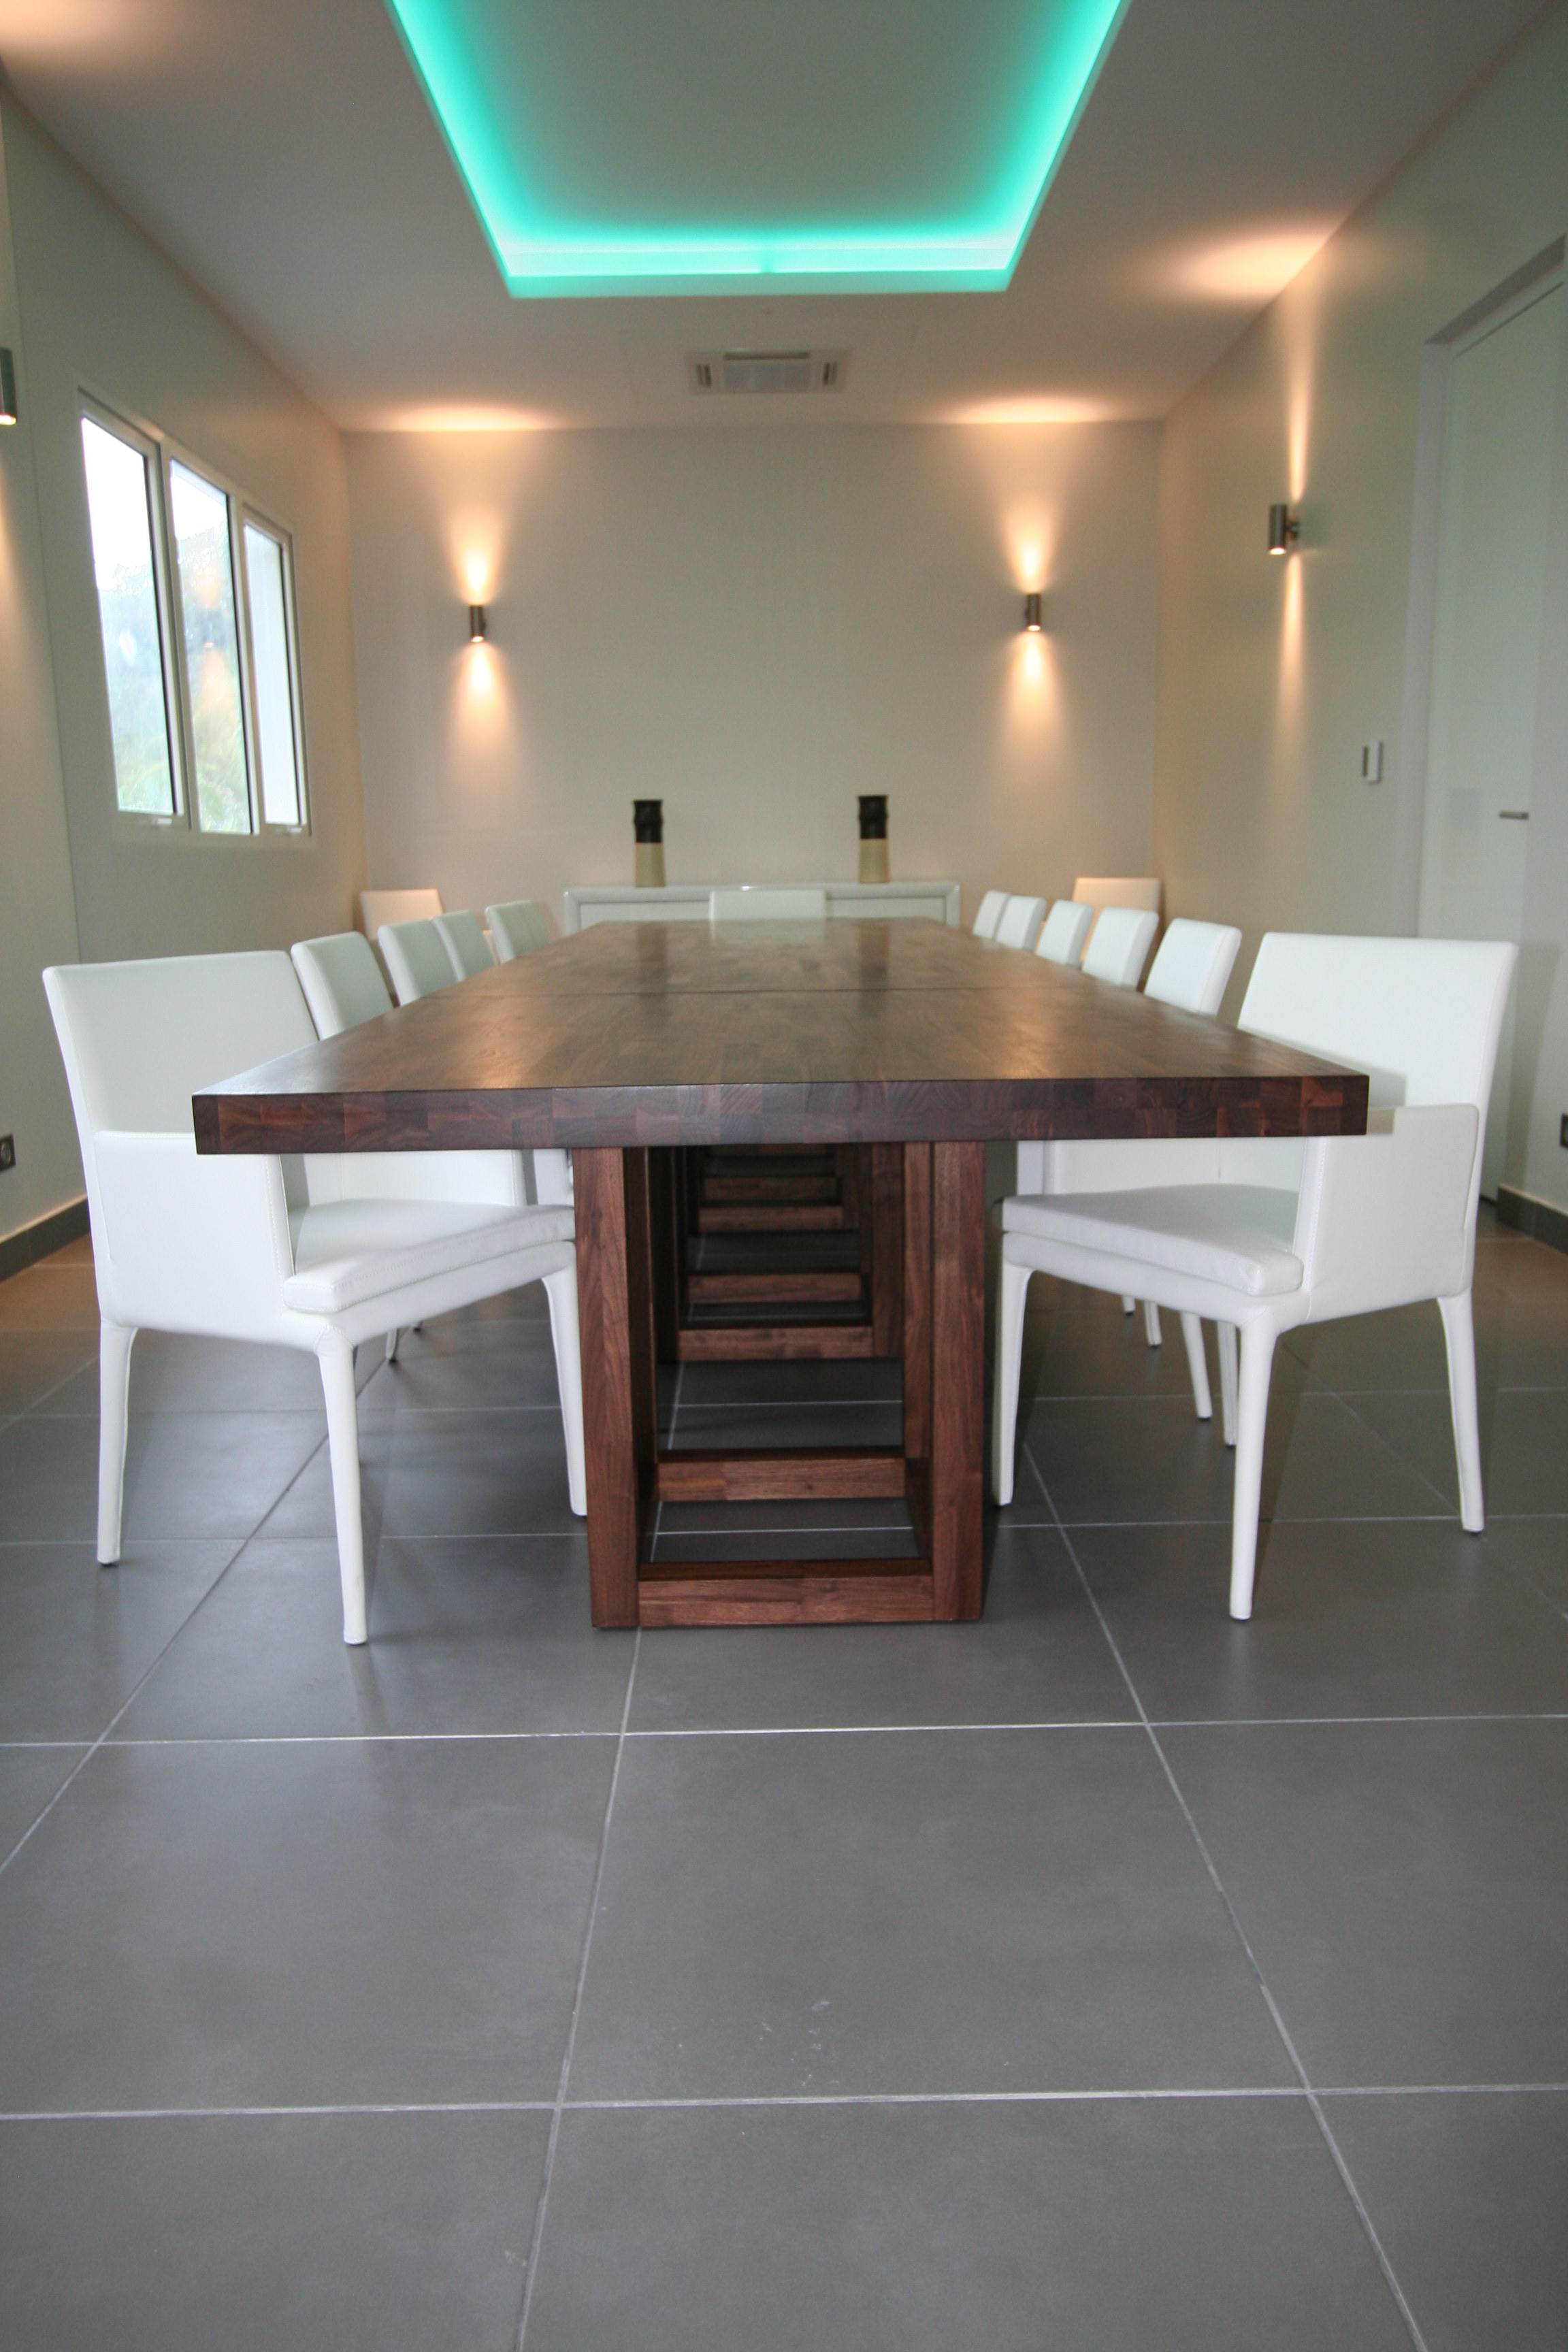 Table Design Sur Mesure - Conceptions De La Maison - Bizoko.com